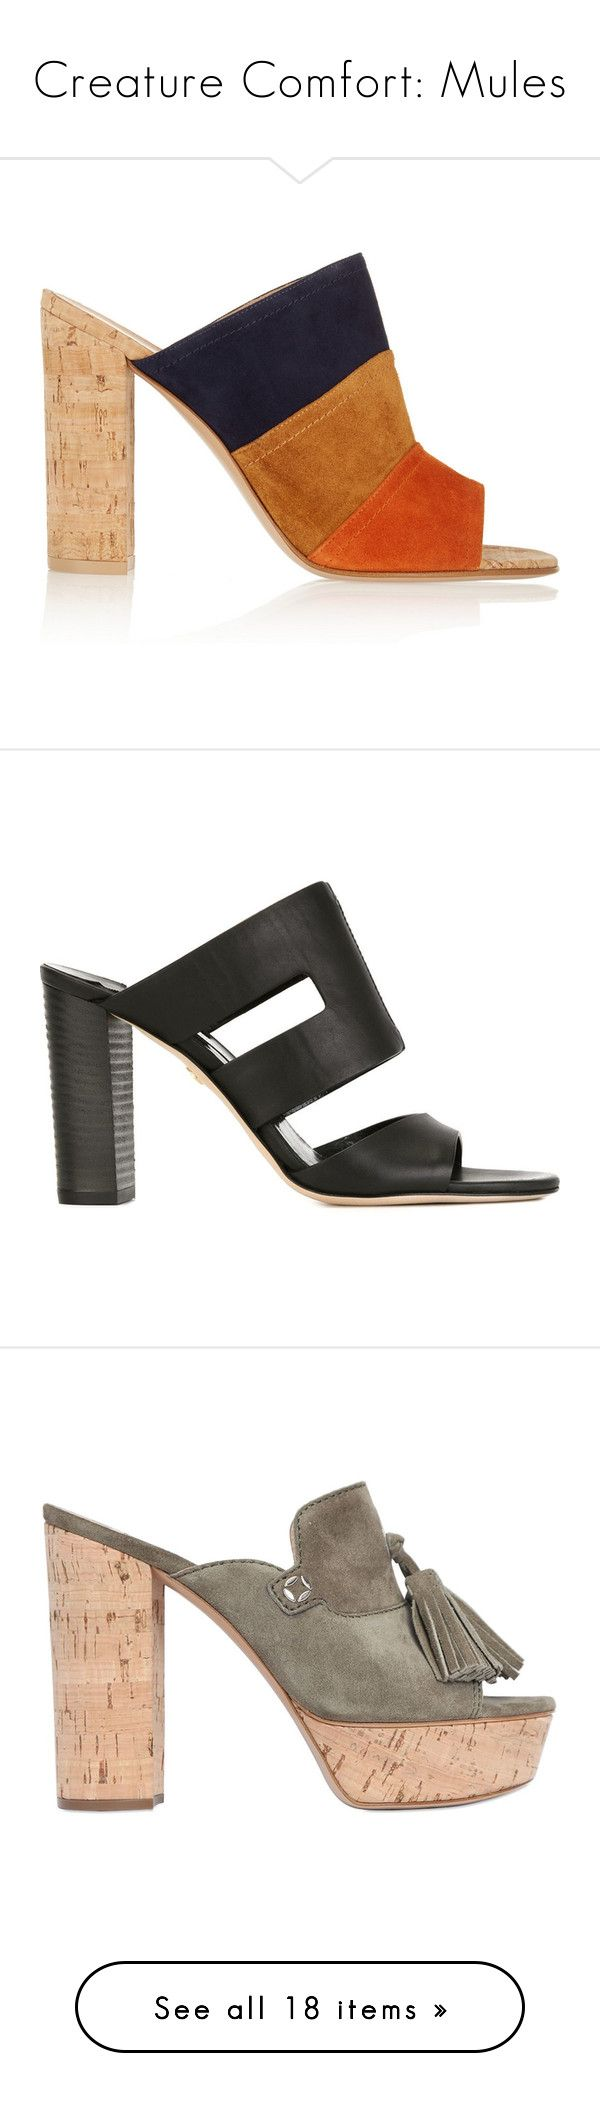 """""""Creature Comfort: Mules"""" by polyvore-editorial ❤ liked on Polyvore featuring mules, shoes, heels, high heels, sapatos, sandals, orange, slip-on shoes, suede slip on shoes and block shoes"""